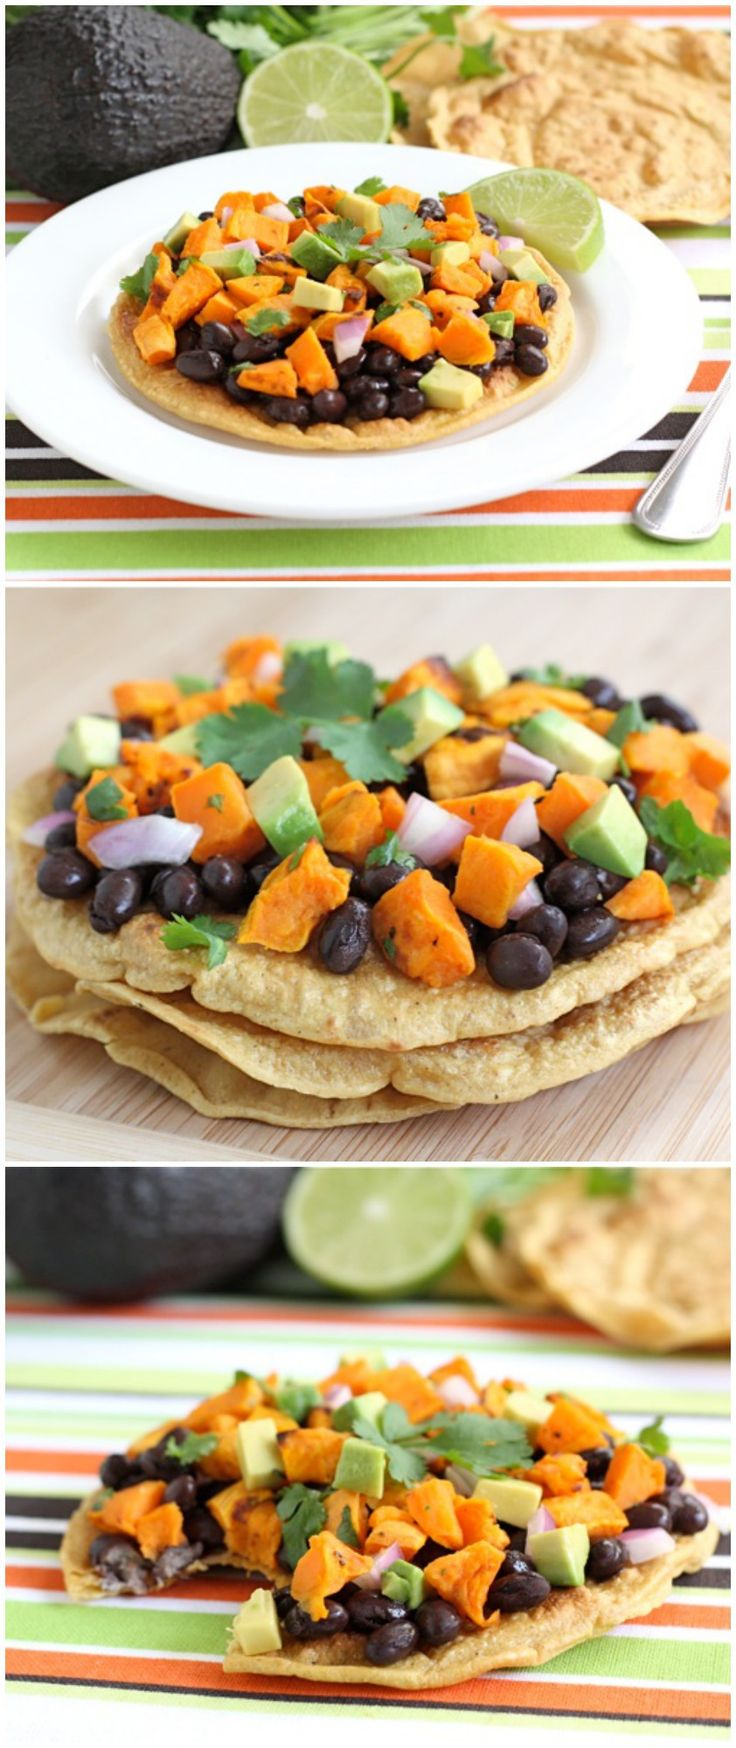 tacos black bean and sweet potato tostadas black bean and sweet potato ...